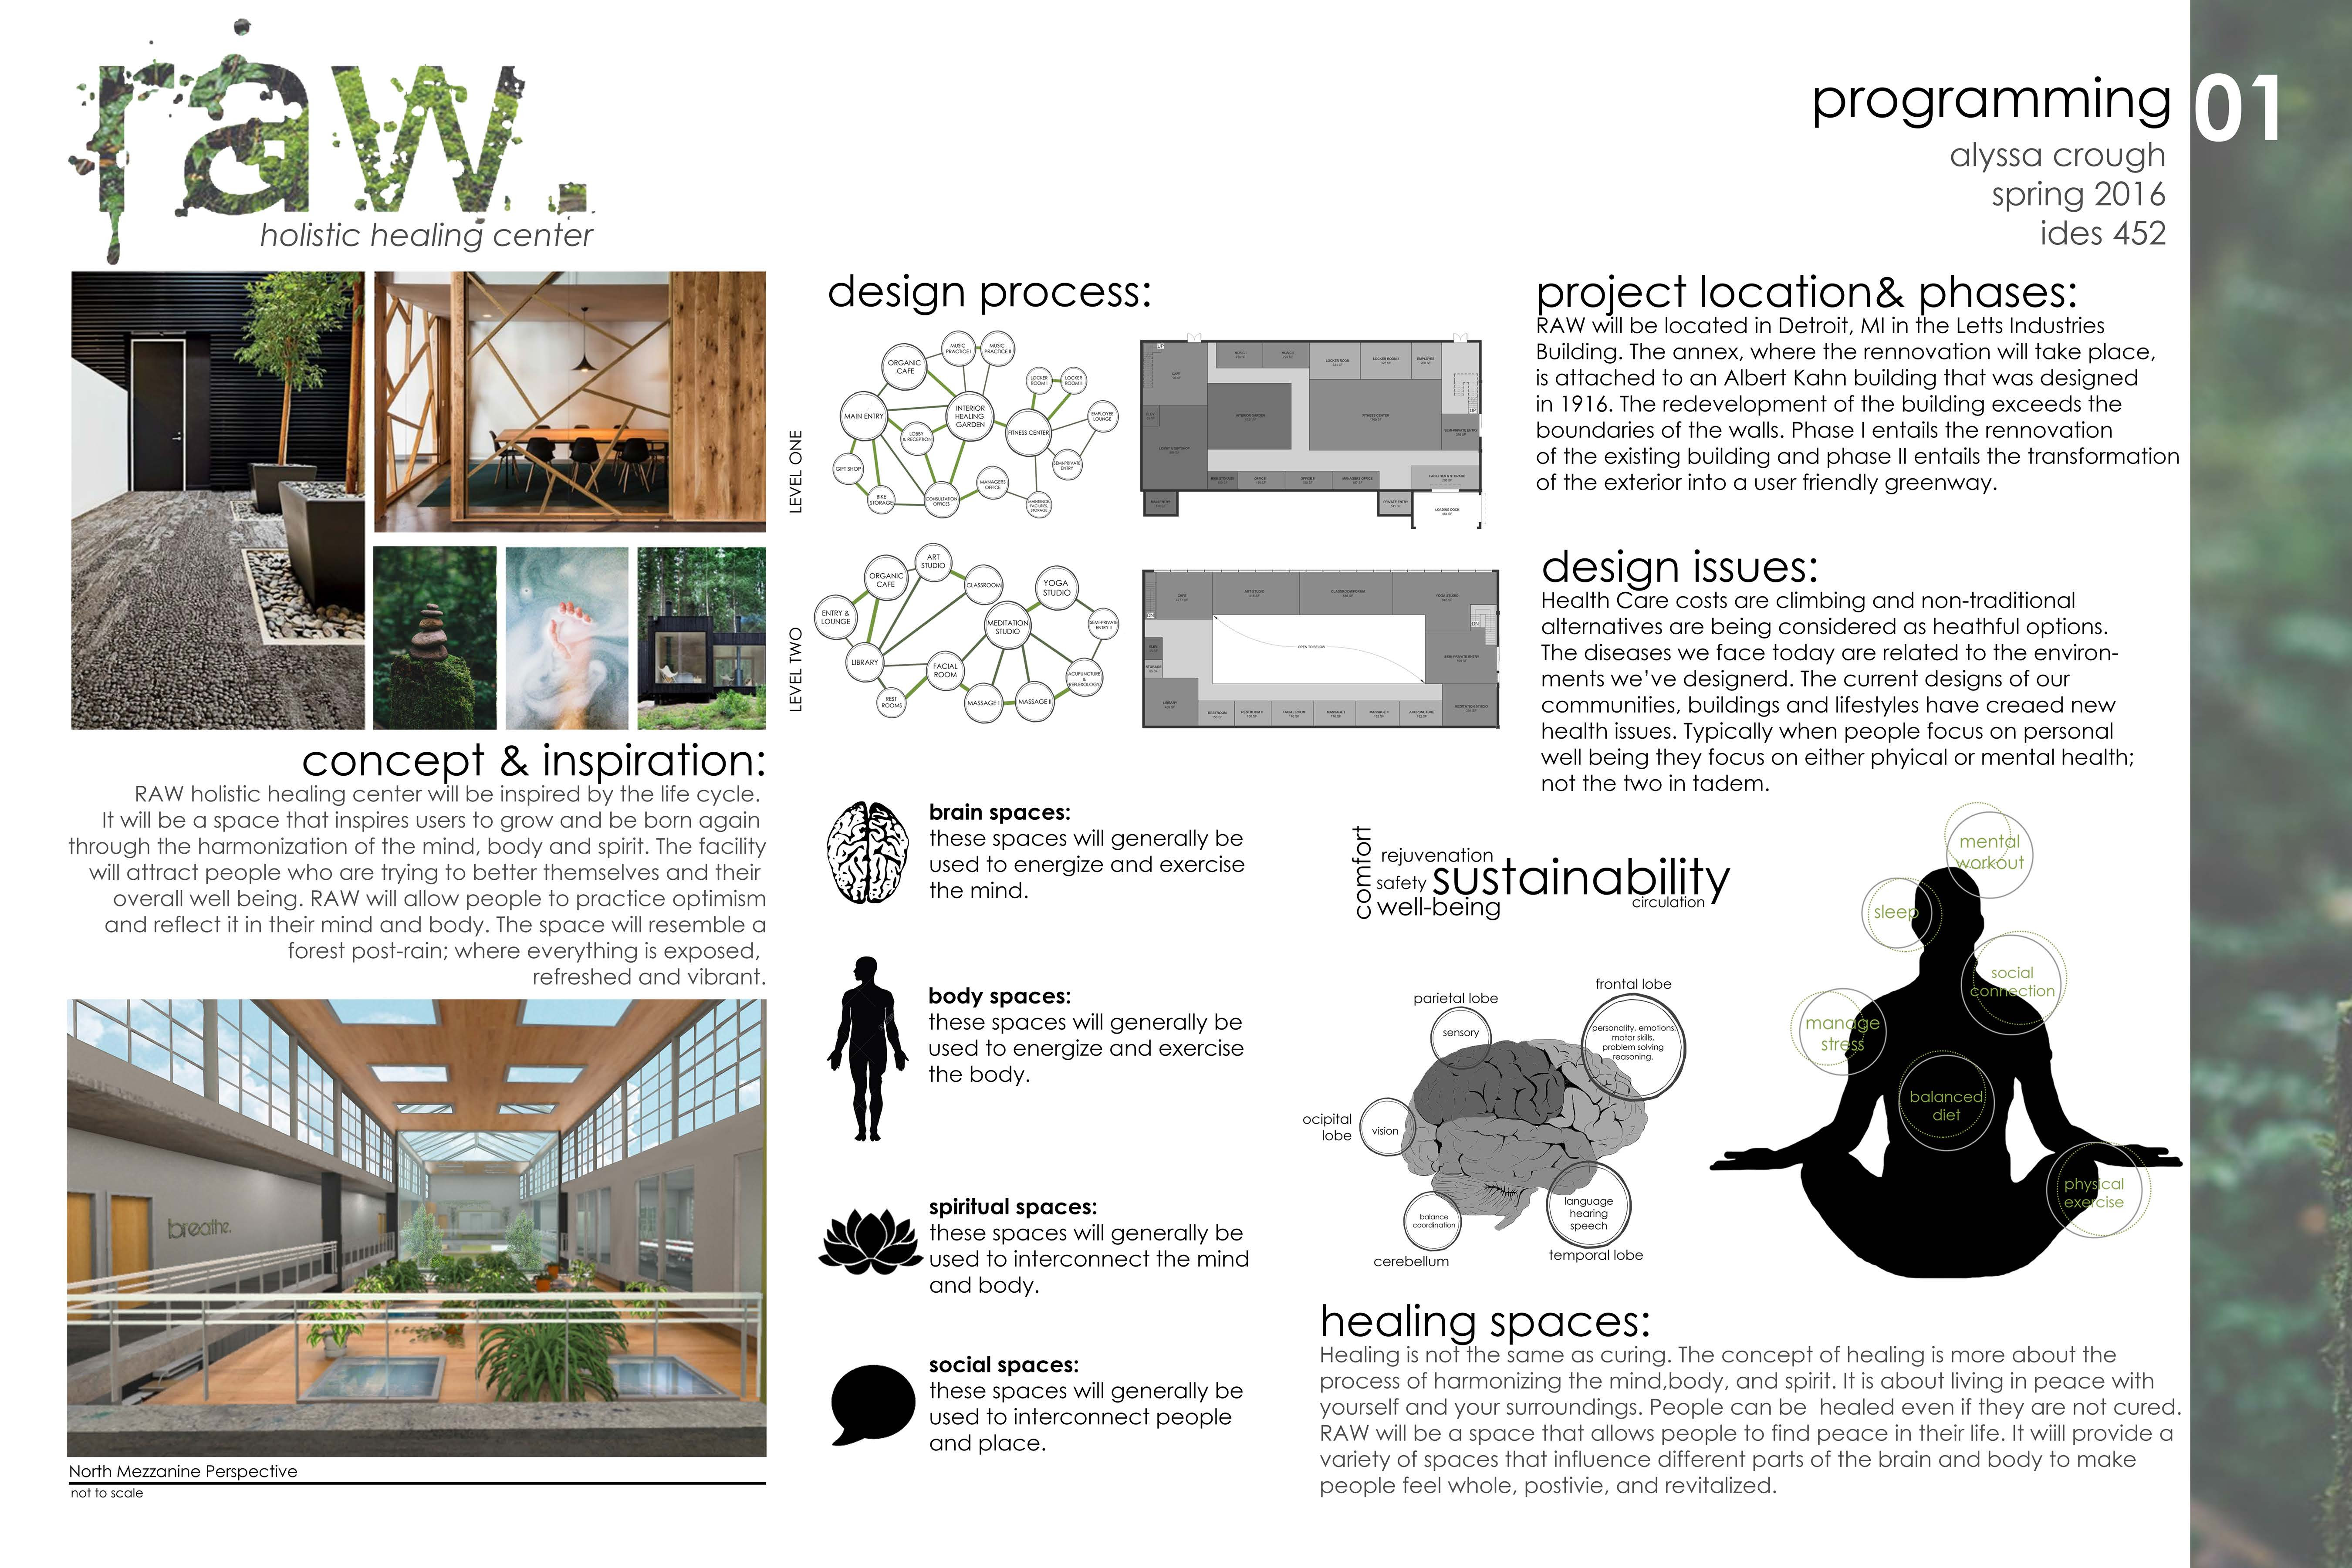 Architecture Thesis Projects Ideas - Thesis Title Ideas For College